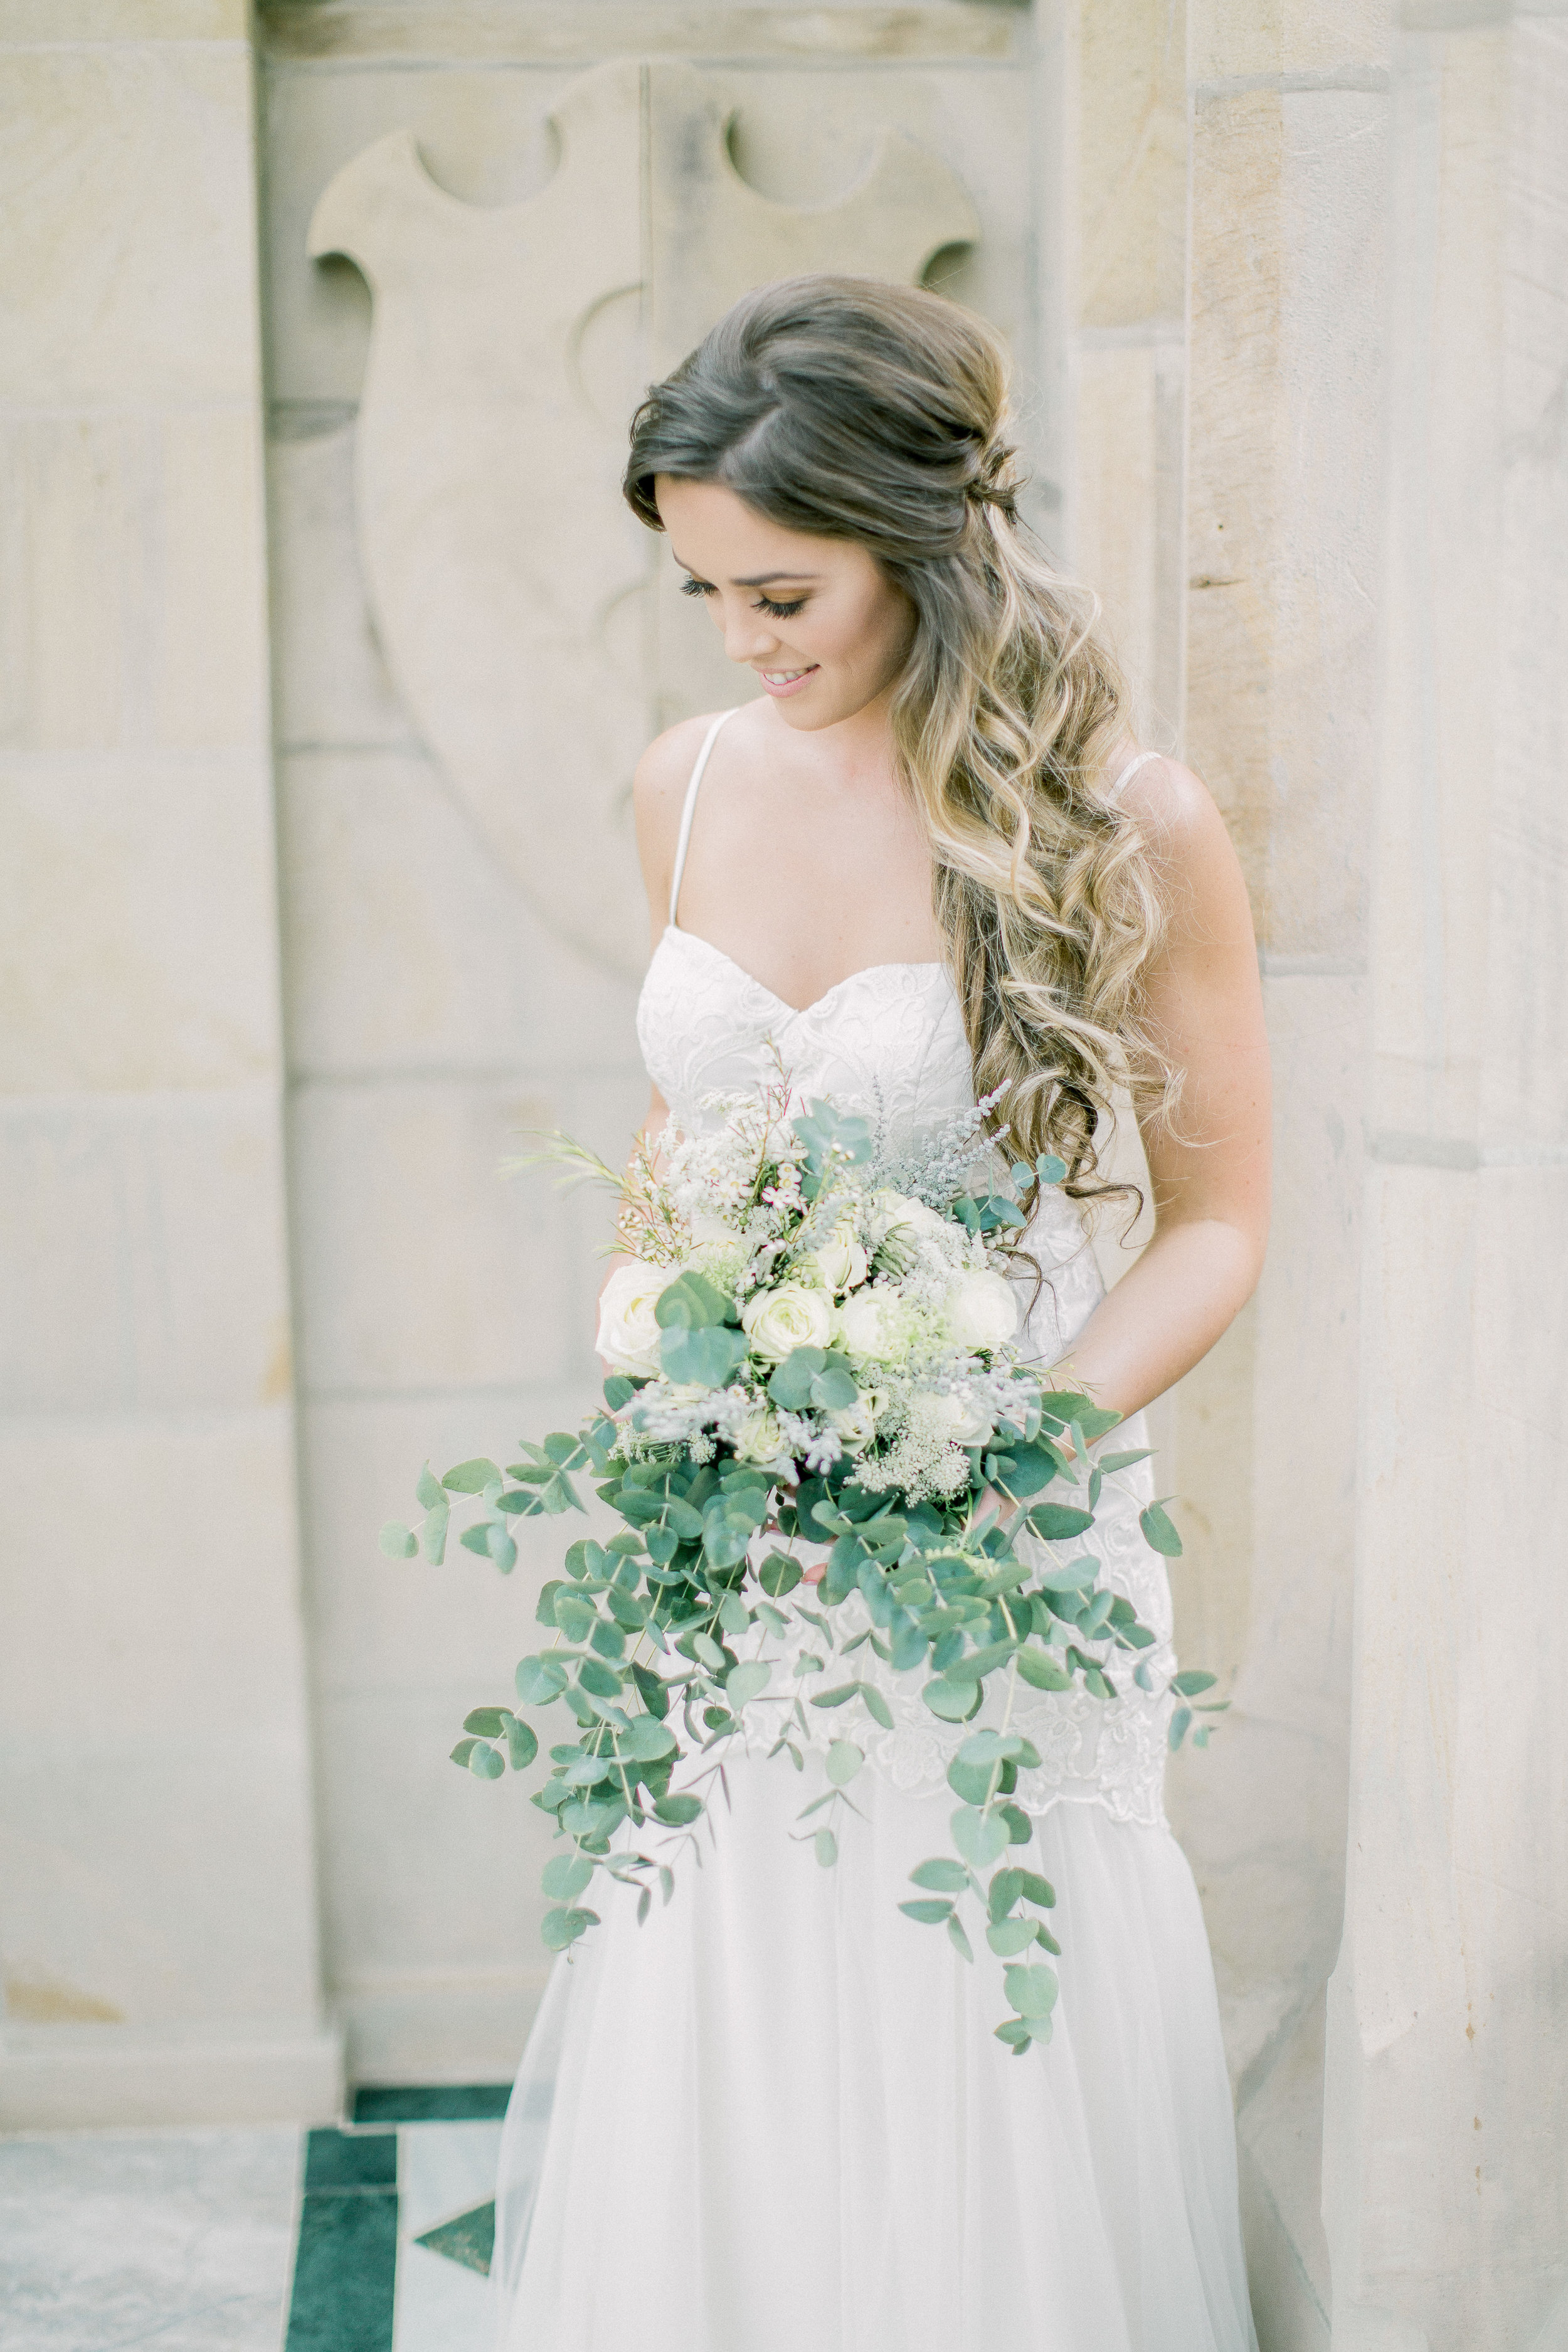 South africa wedding photographer clareece smit photography33.jpg